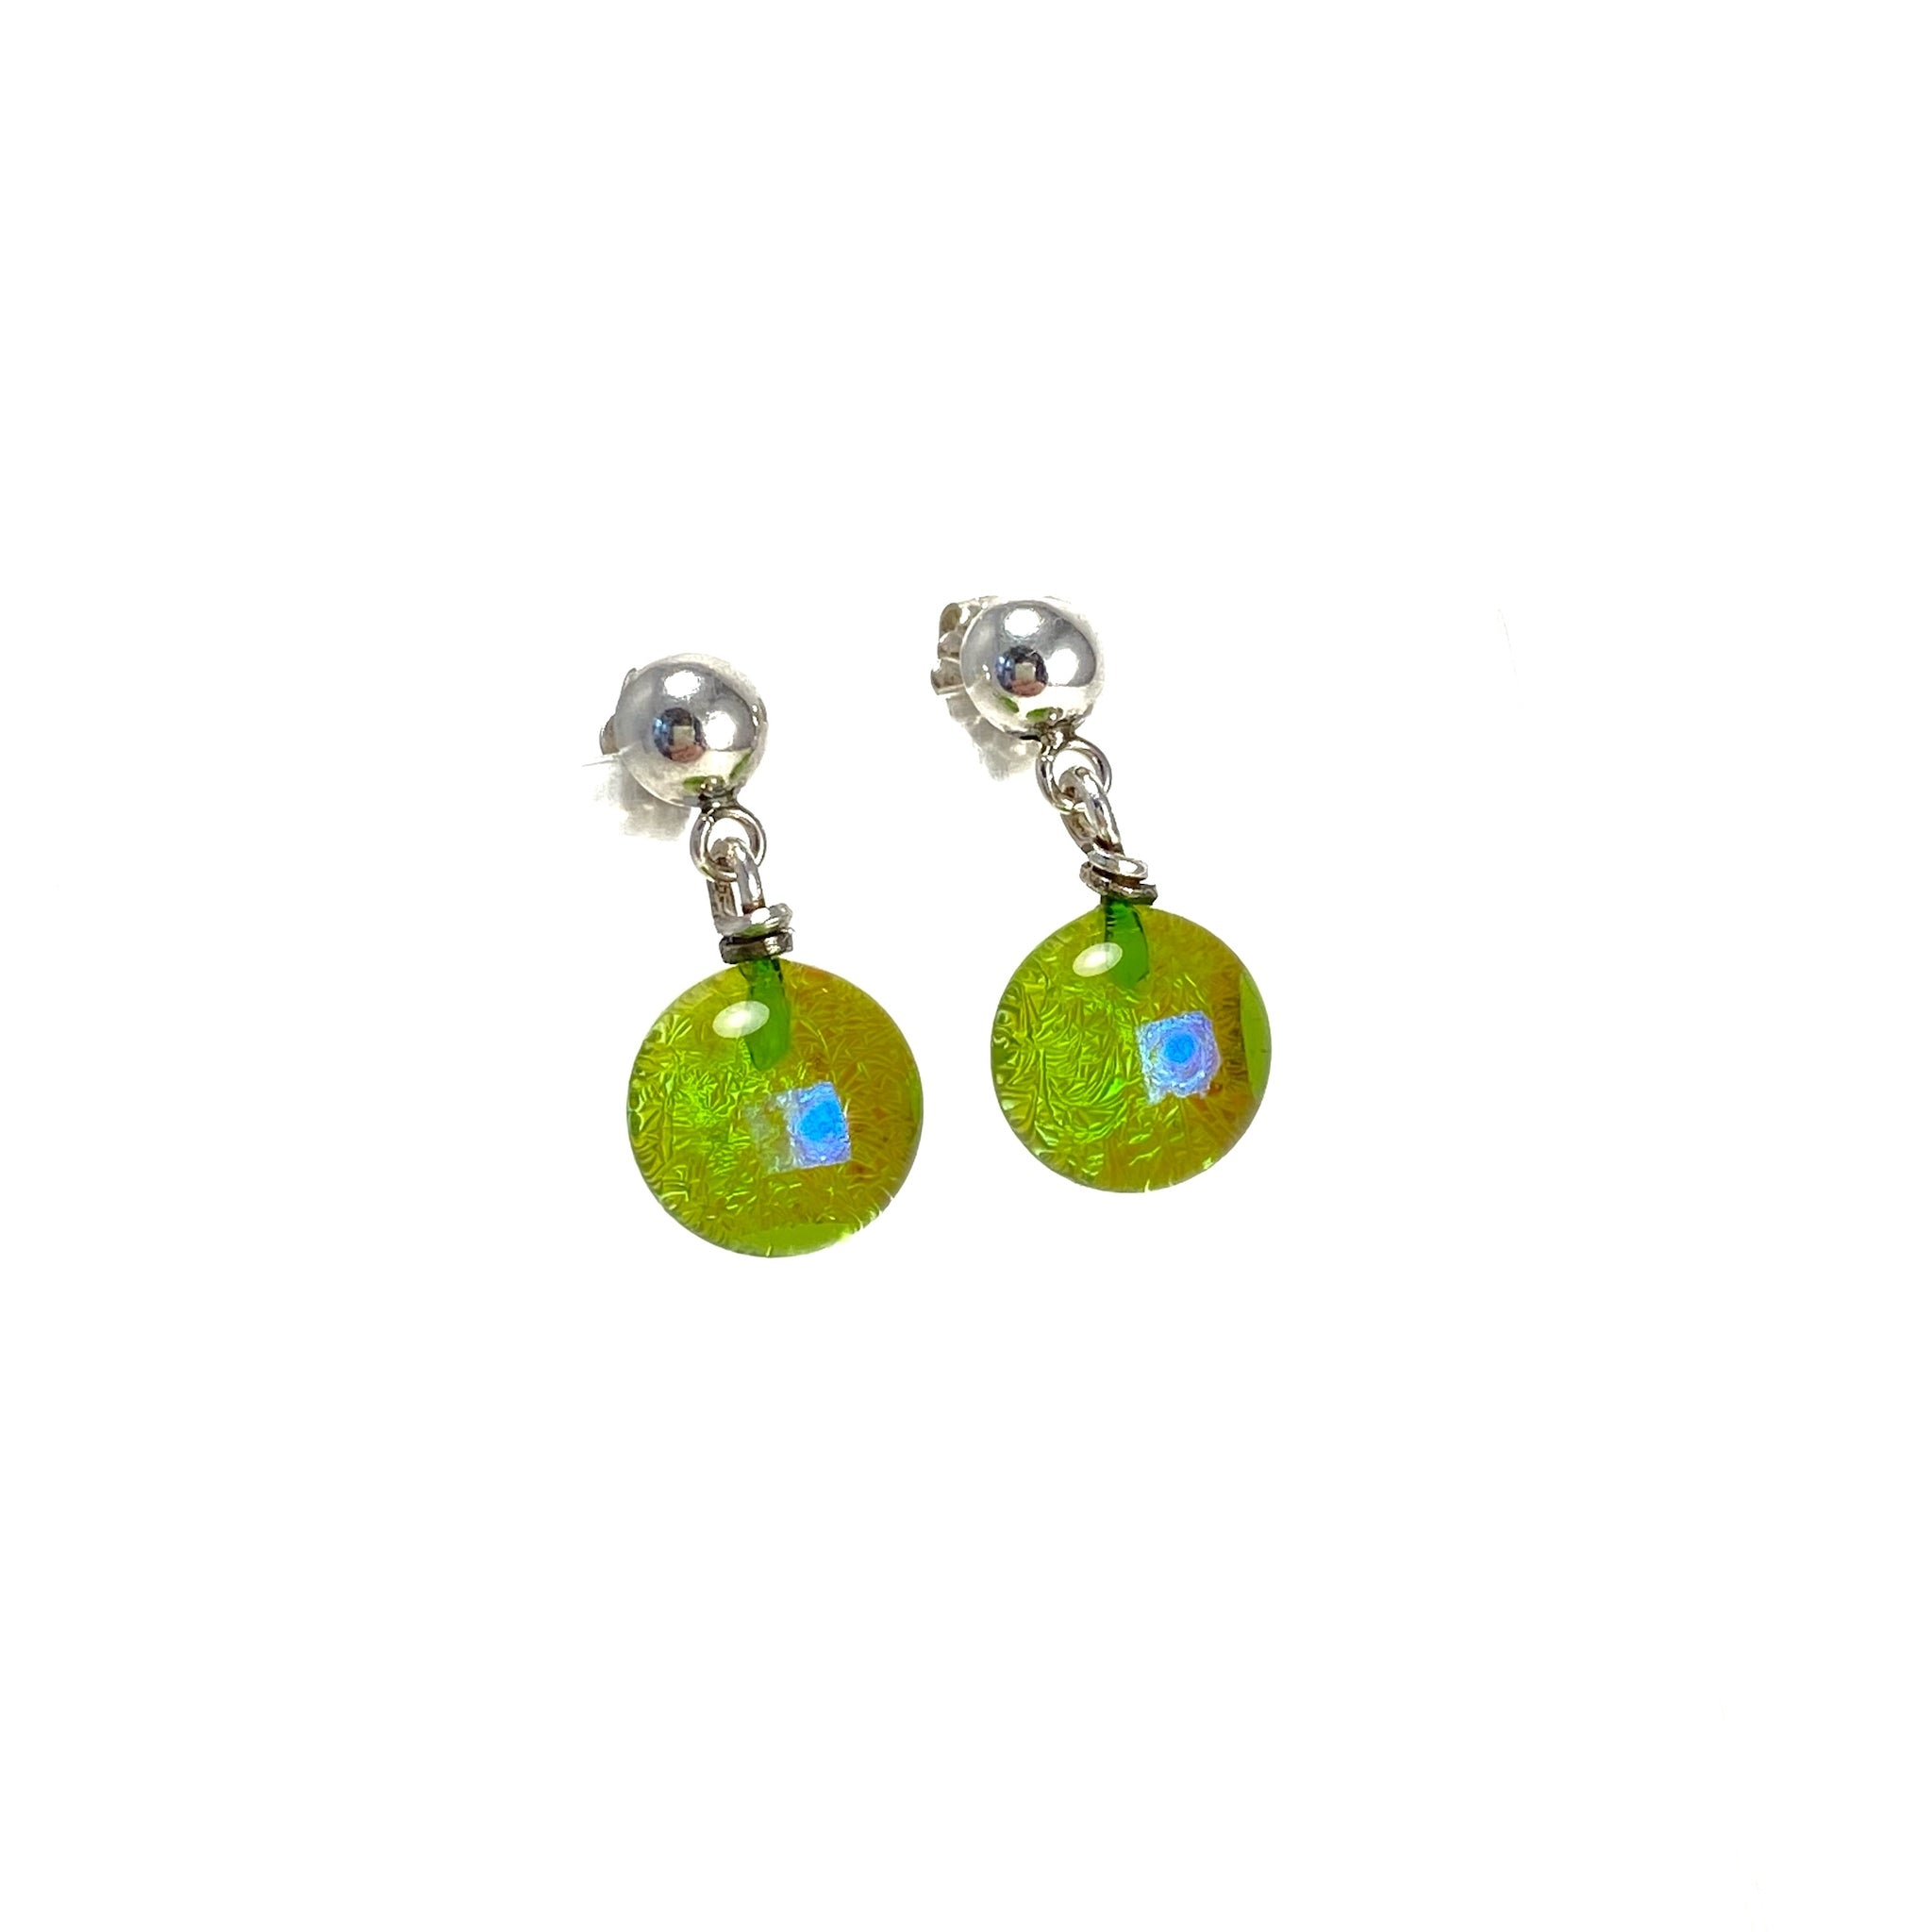 Space Ball Earrings in Citron Green